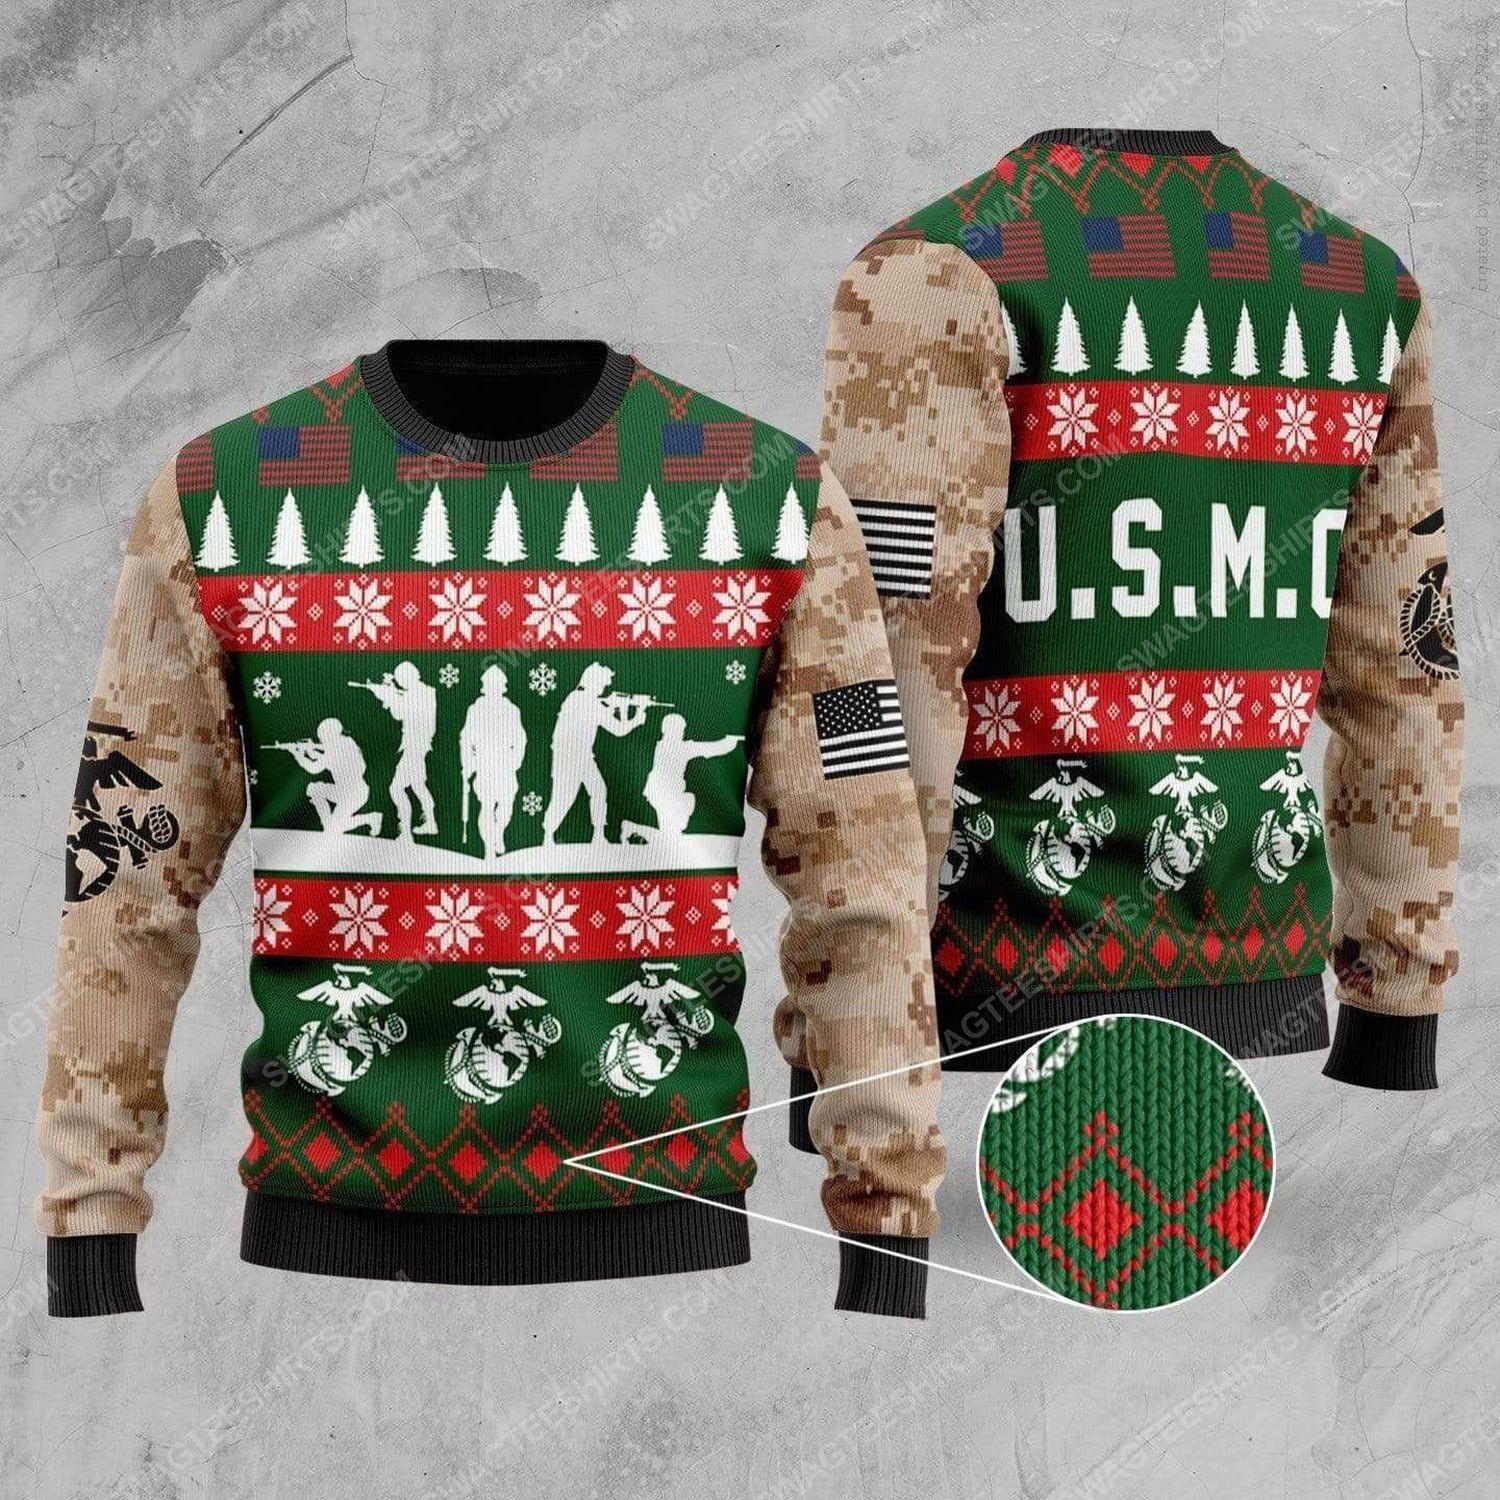 United states marine corps all over print ugly christmas sweater 3 - Copy